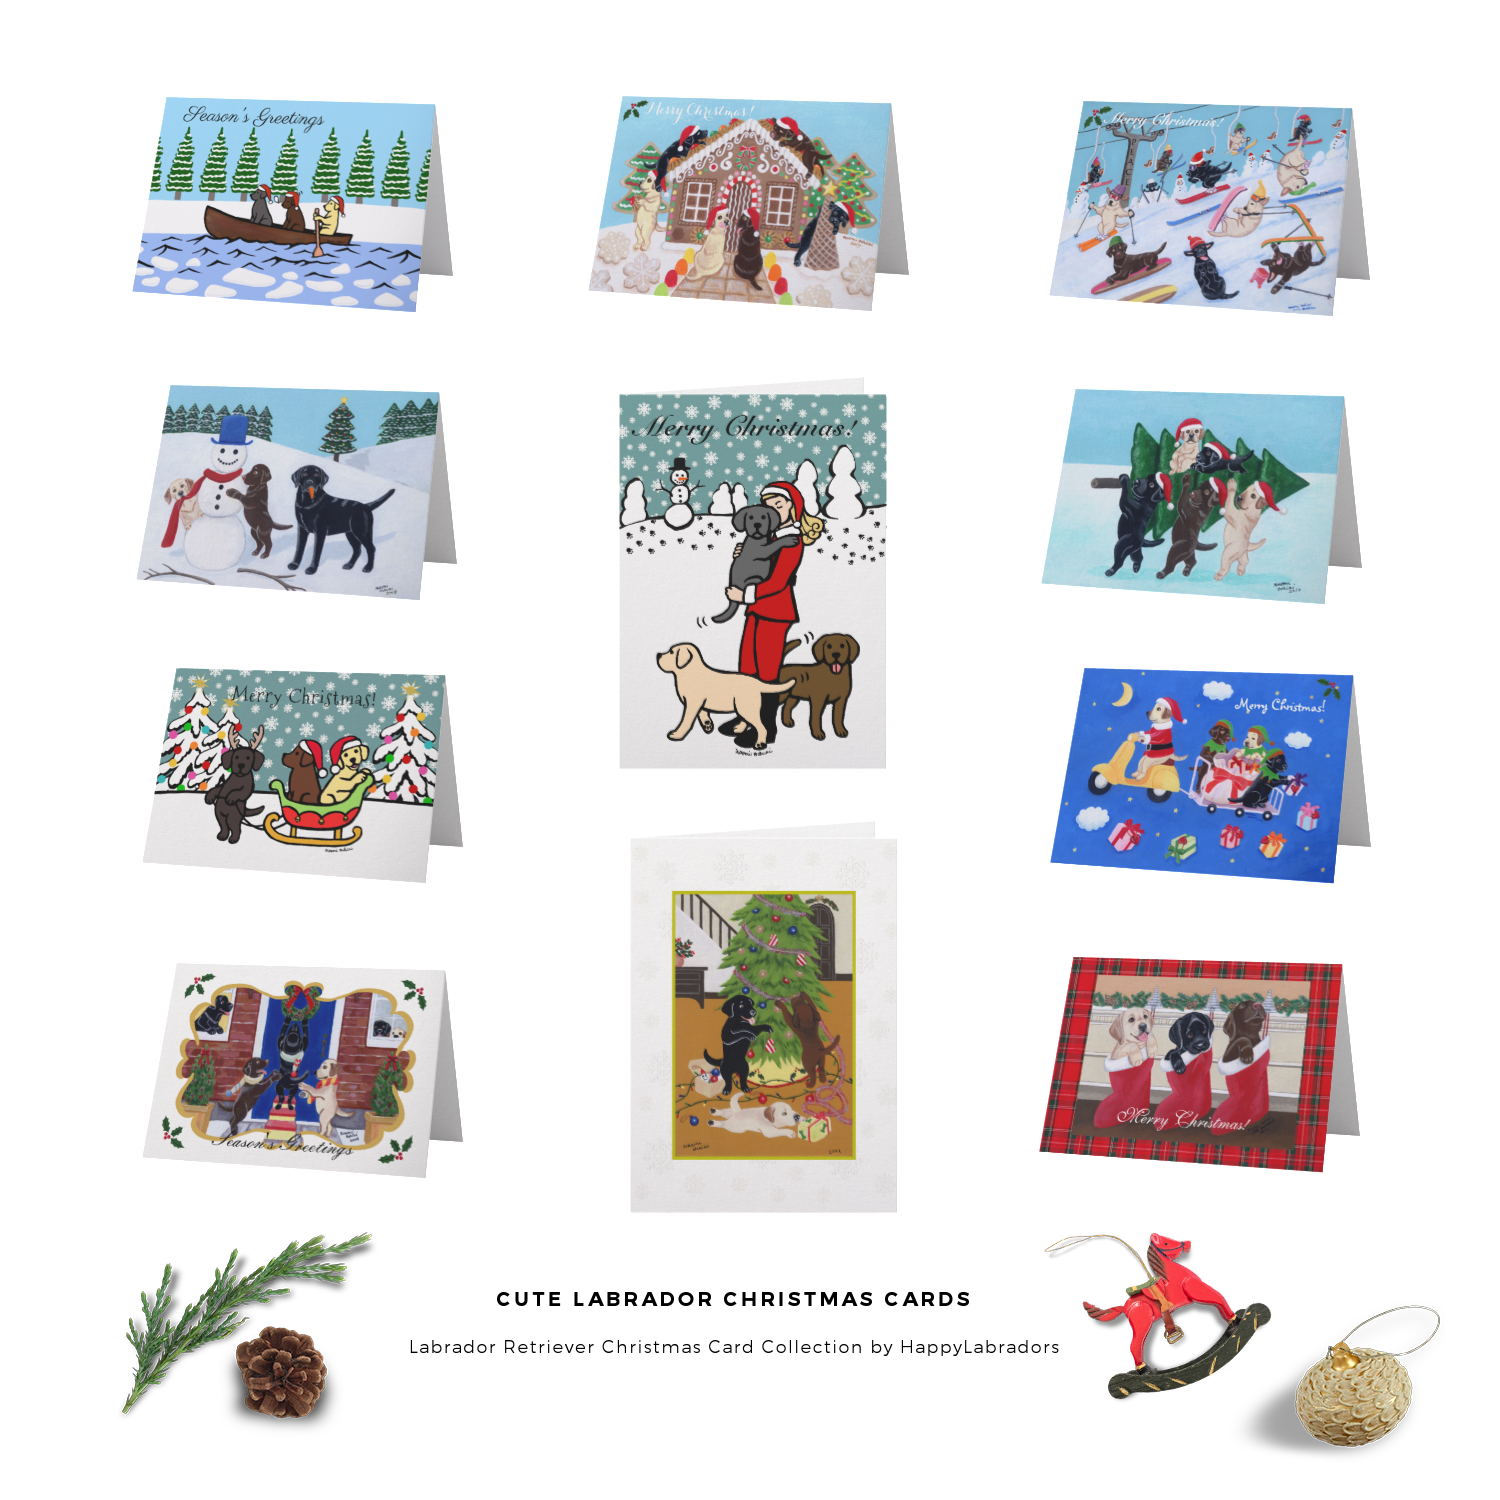 Labrador Retriever Christmas Card Collection by HappyLabradors